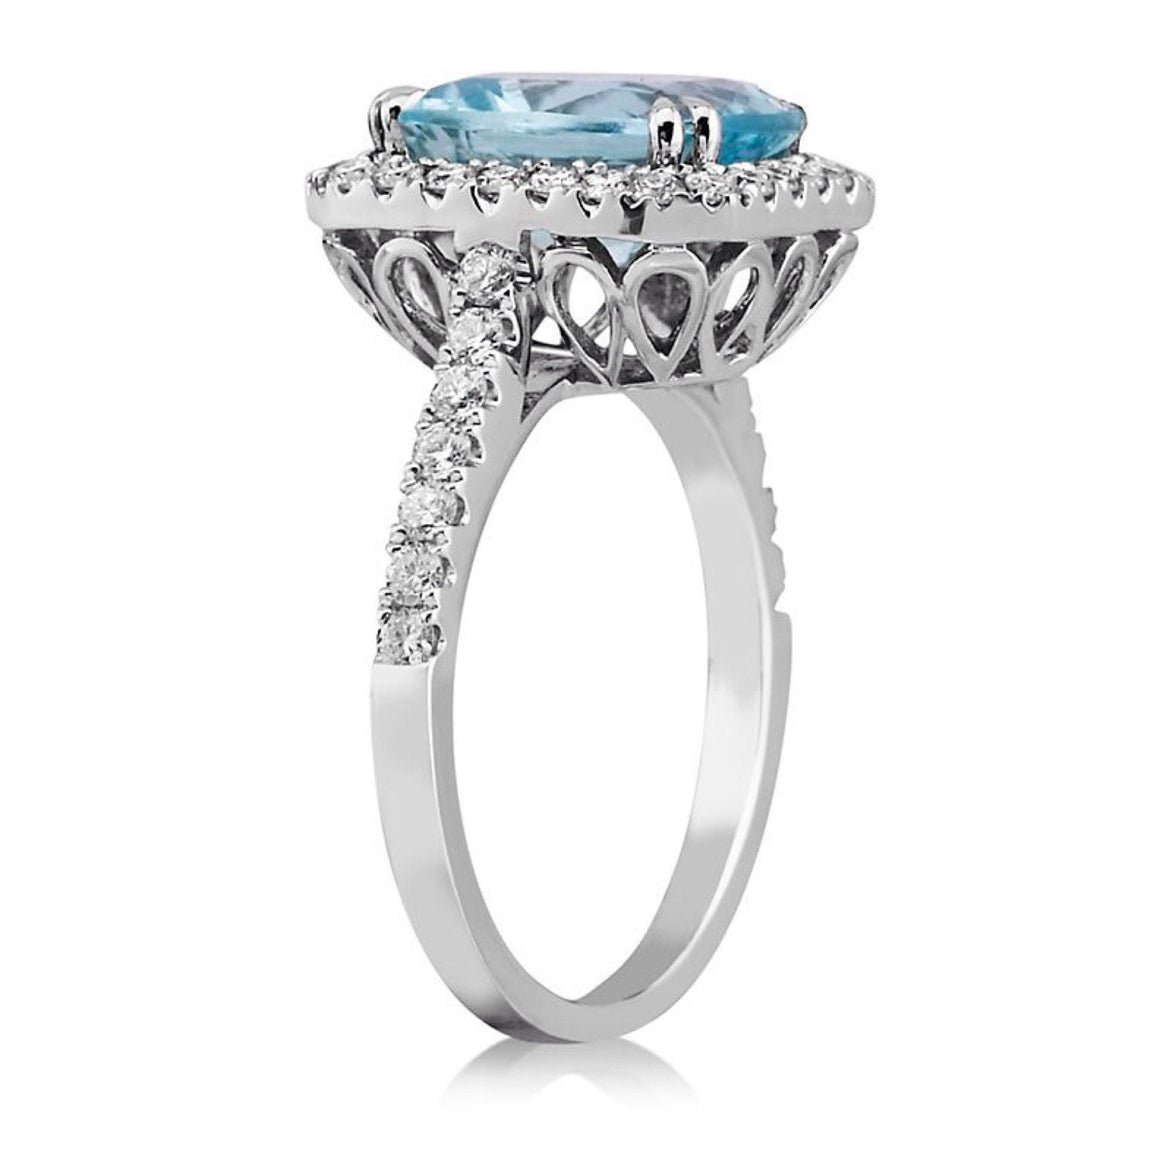 Aquamarine Radiant Diamond Engagement Ring 14kt White Gold